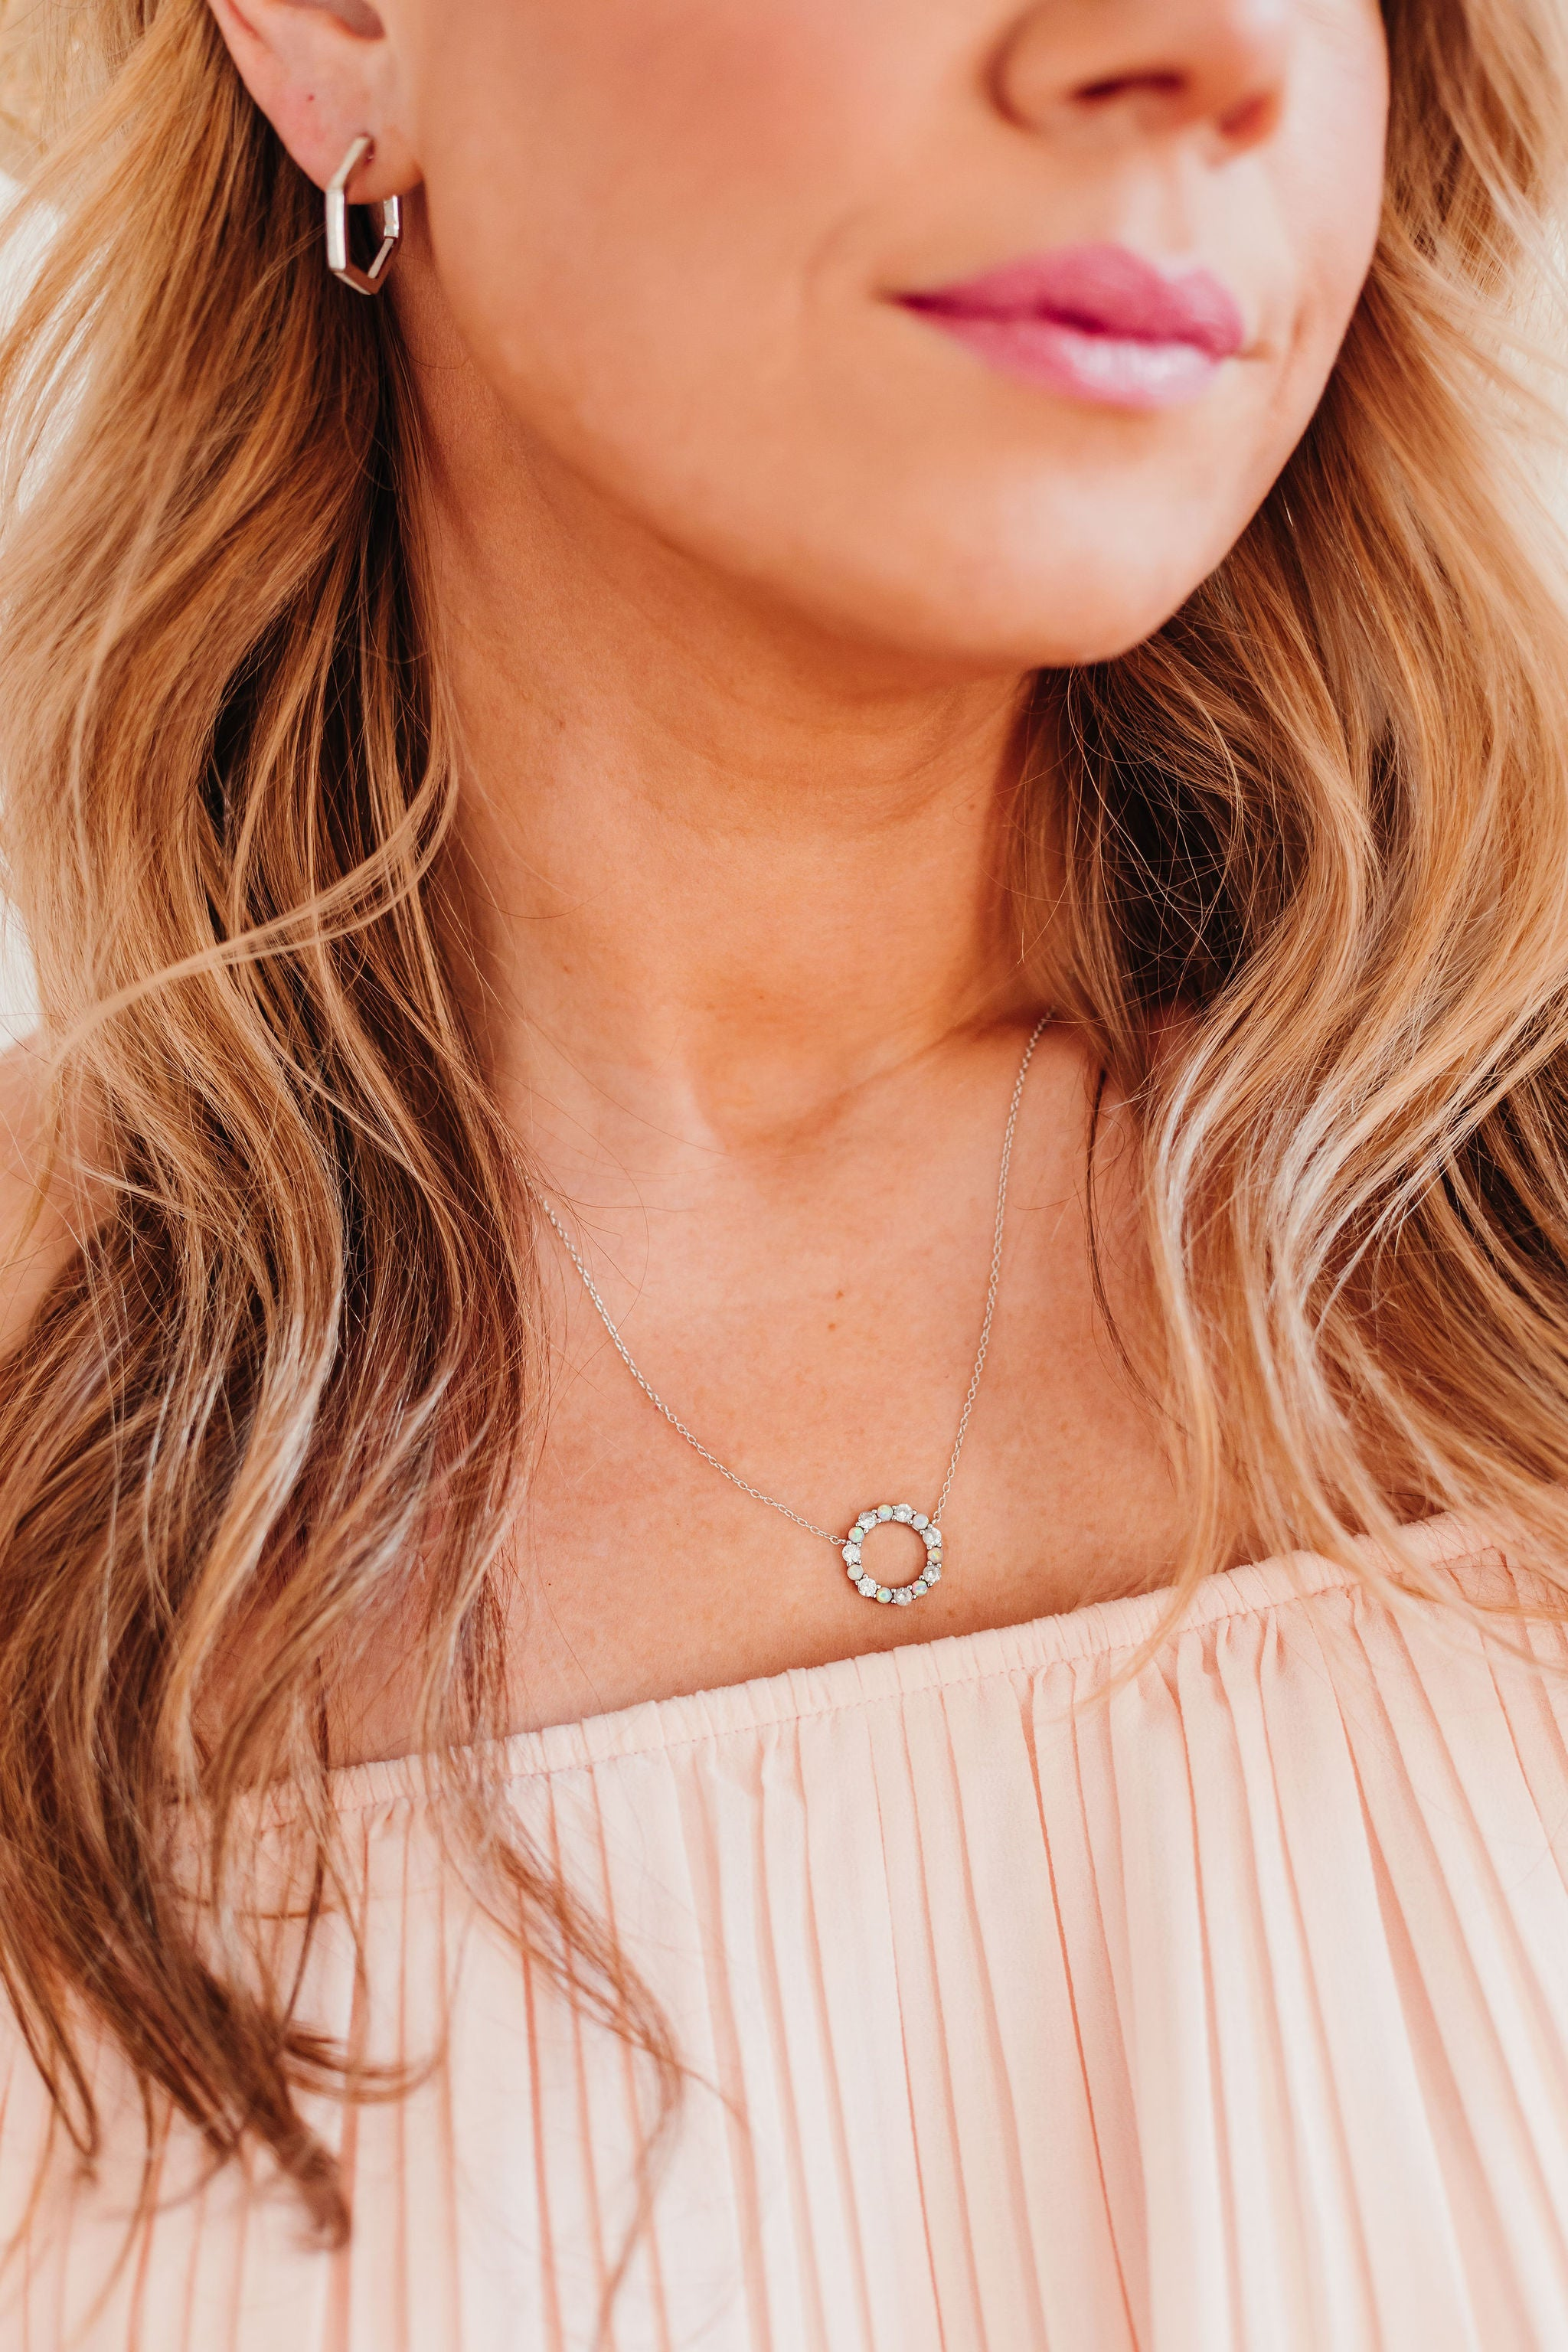 Chloe + Lois White Opal Infinity Necklace